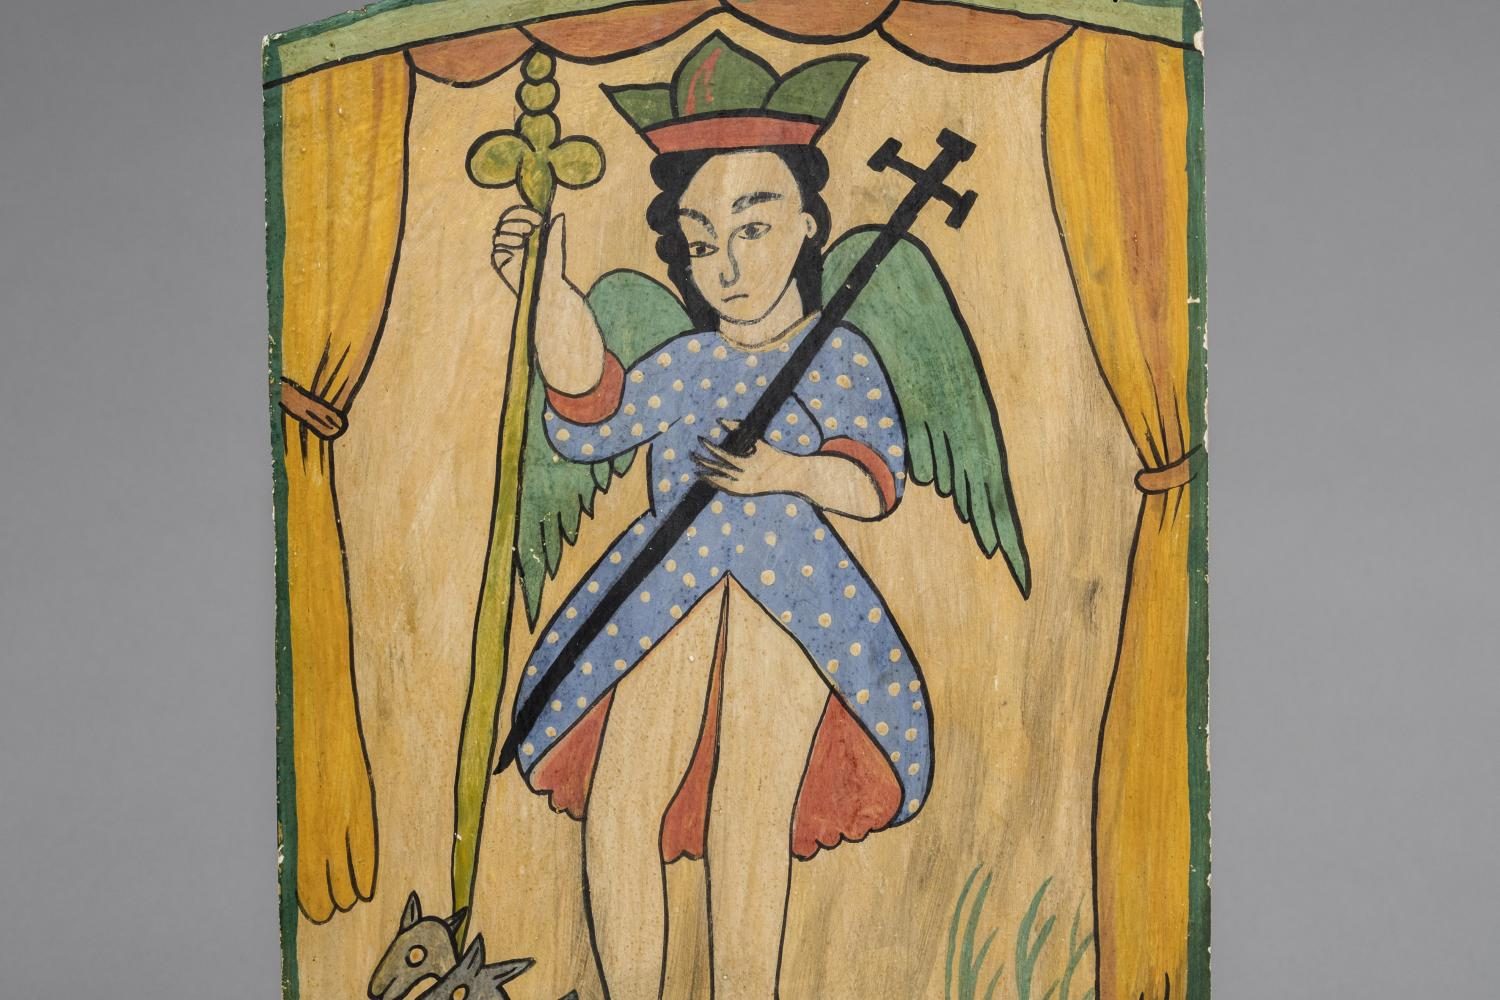 painting on wood of the archangel san miguel